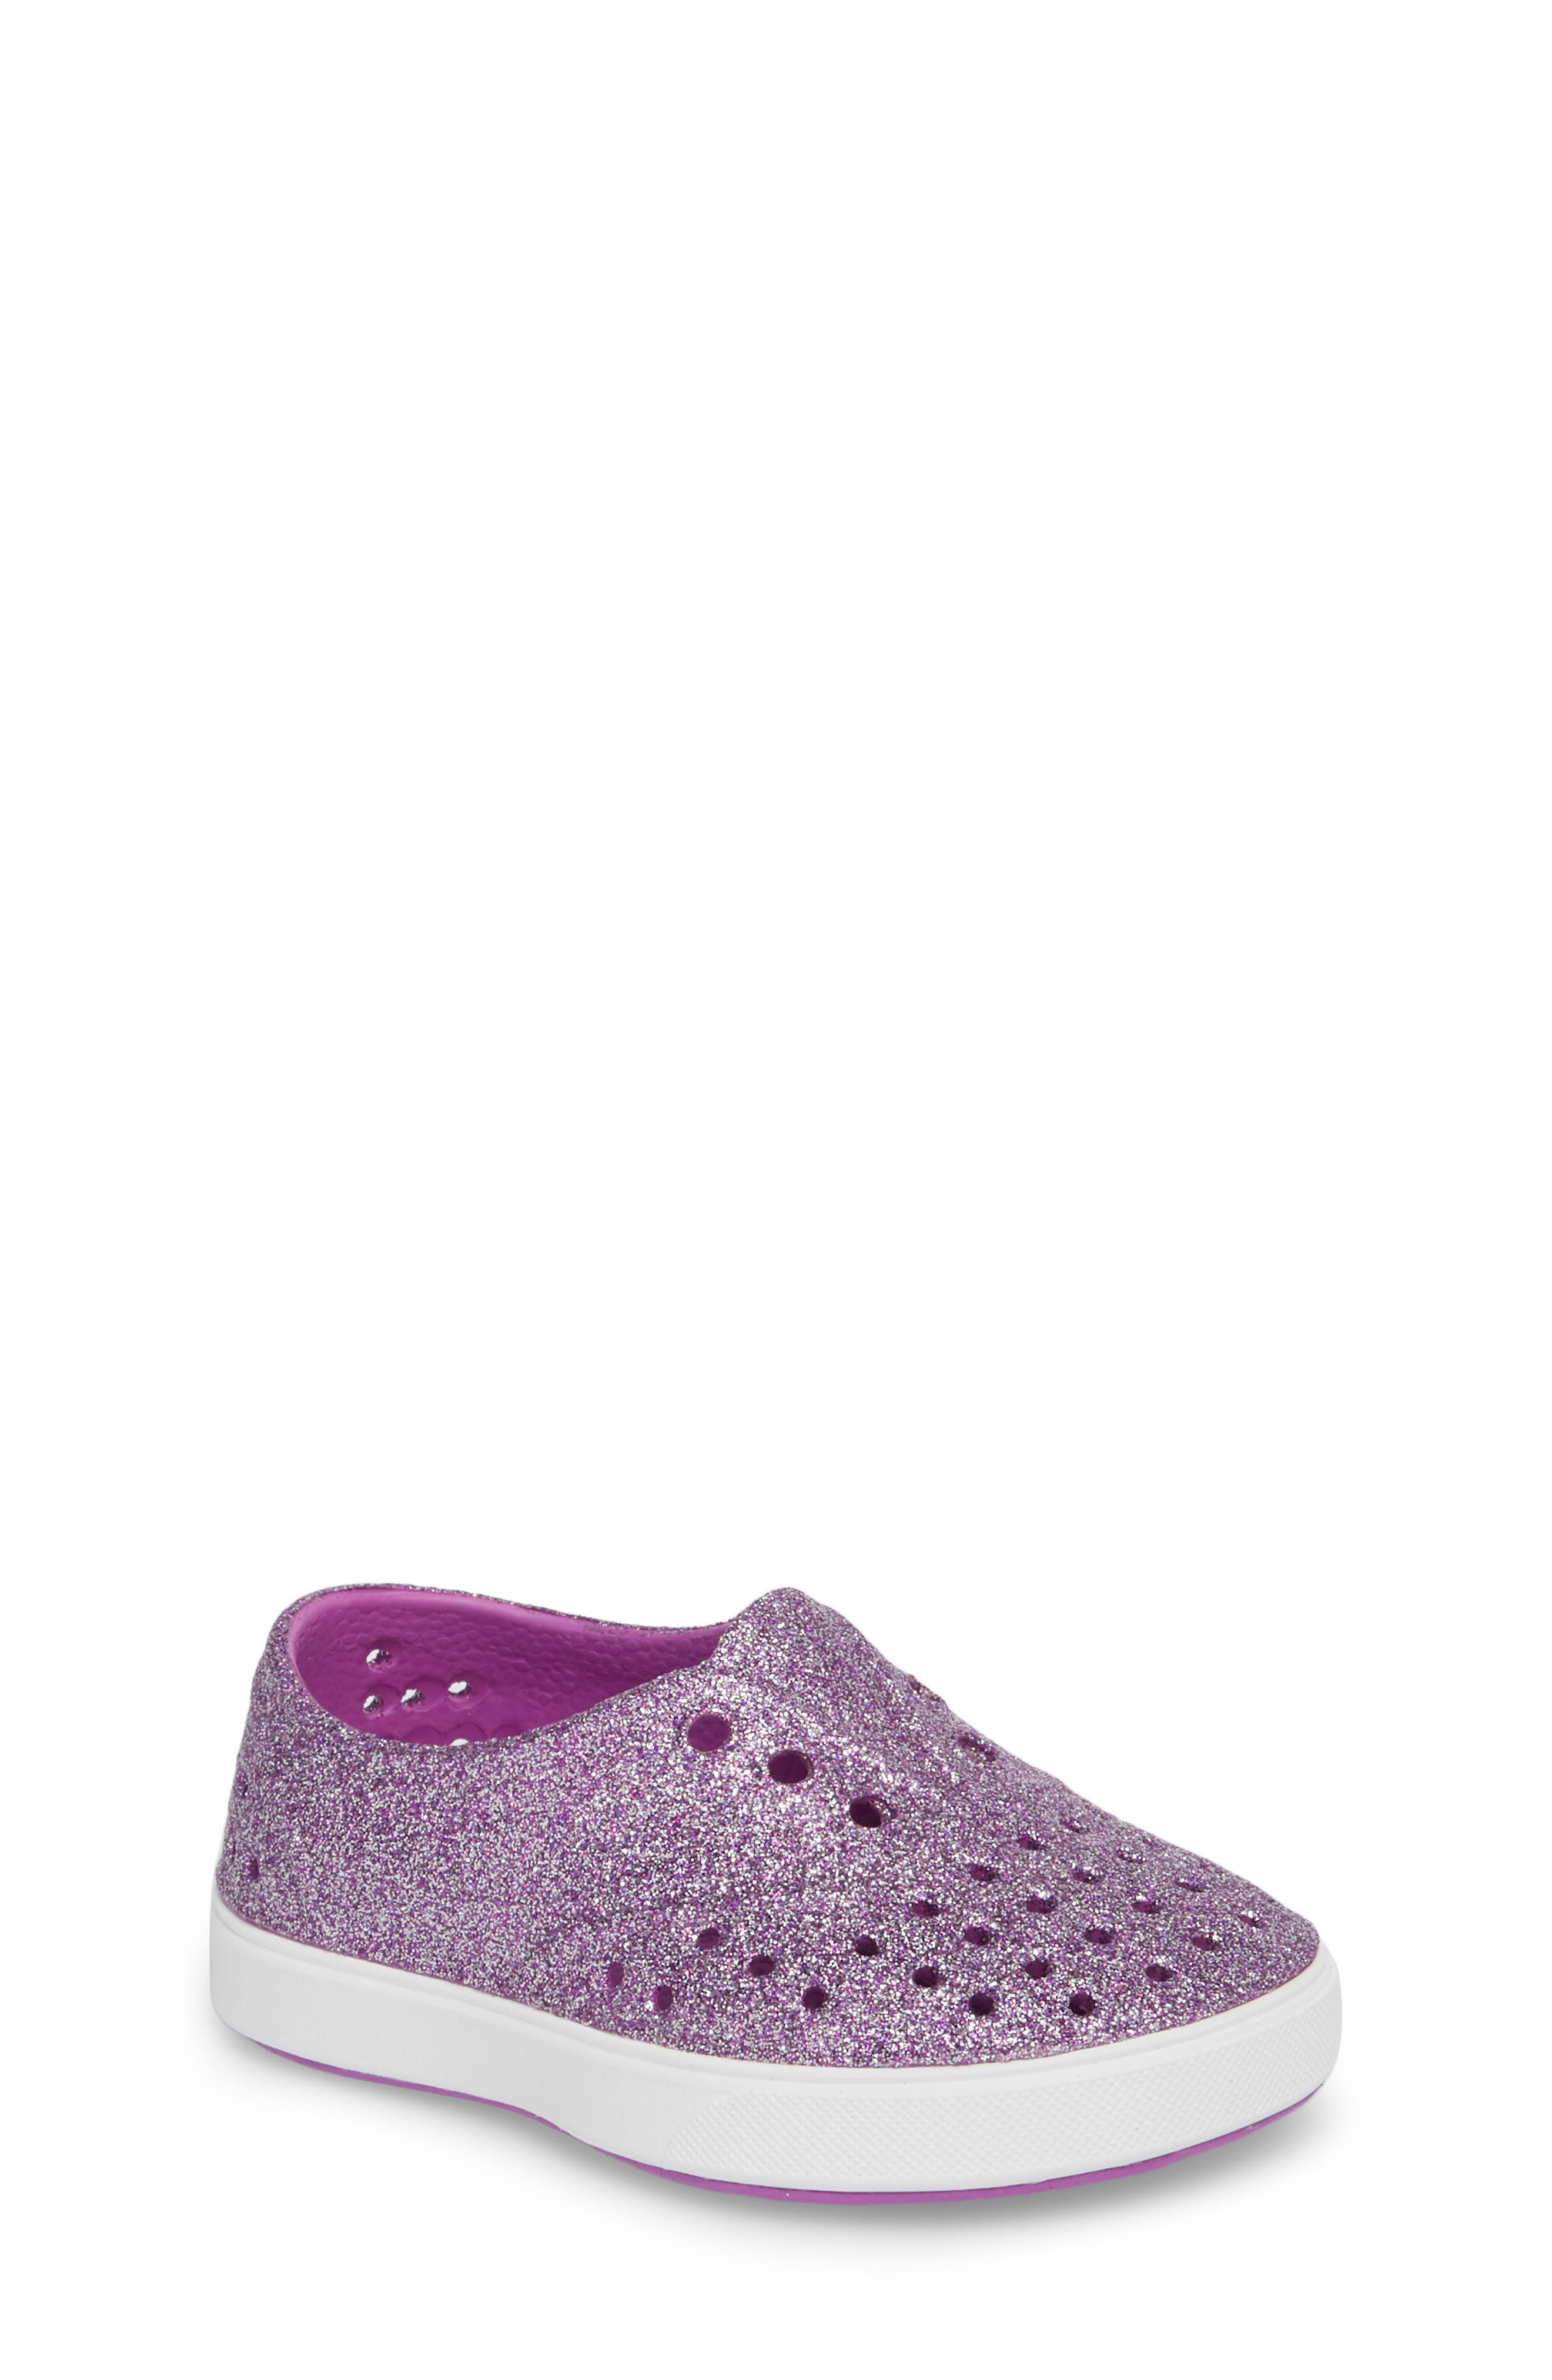 Miller Sparkly Perforated Slip-On,                         Main,                         color, Peace Bling/ Shell White